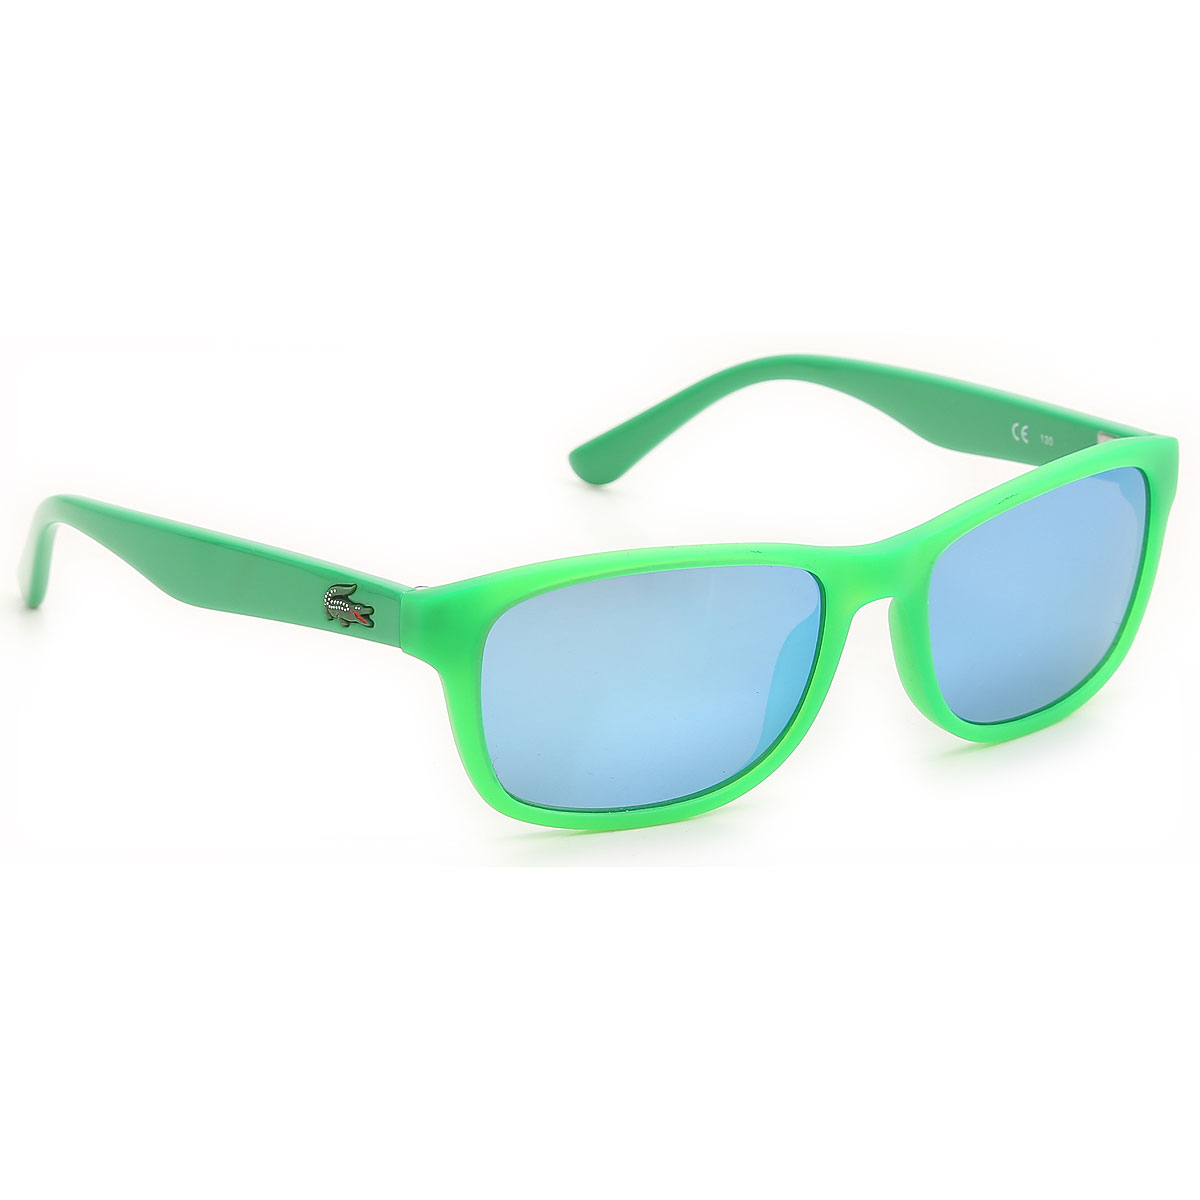 Image of Lacoste Kids Sunglasses for Boys On Sale, Fluo Matt Green, 2017, One size one size